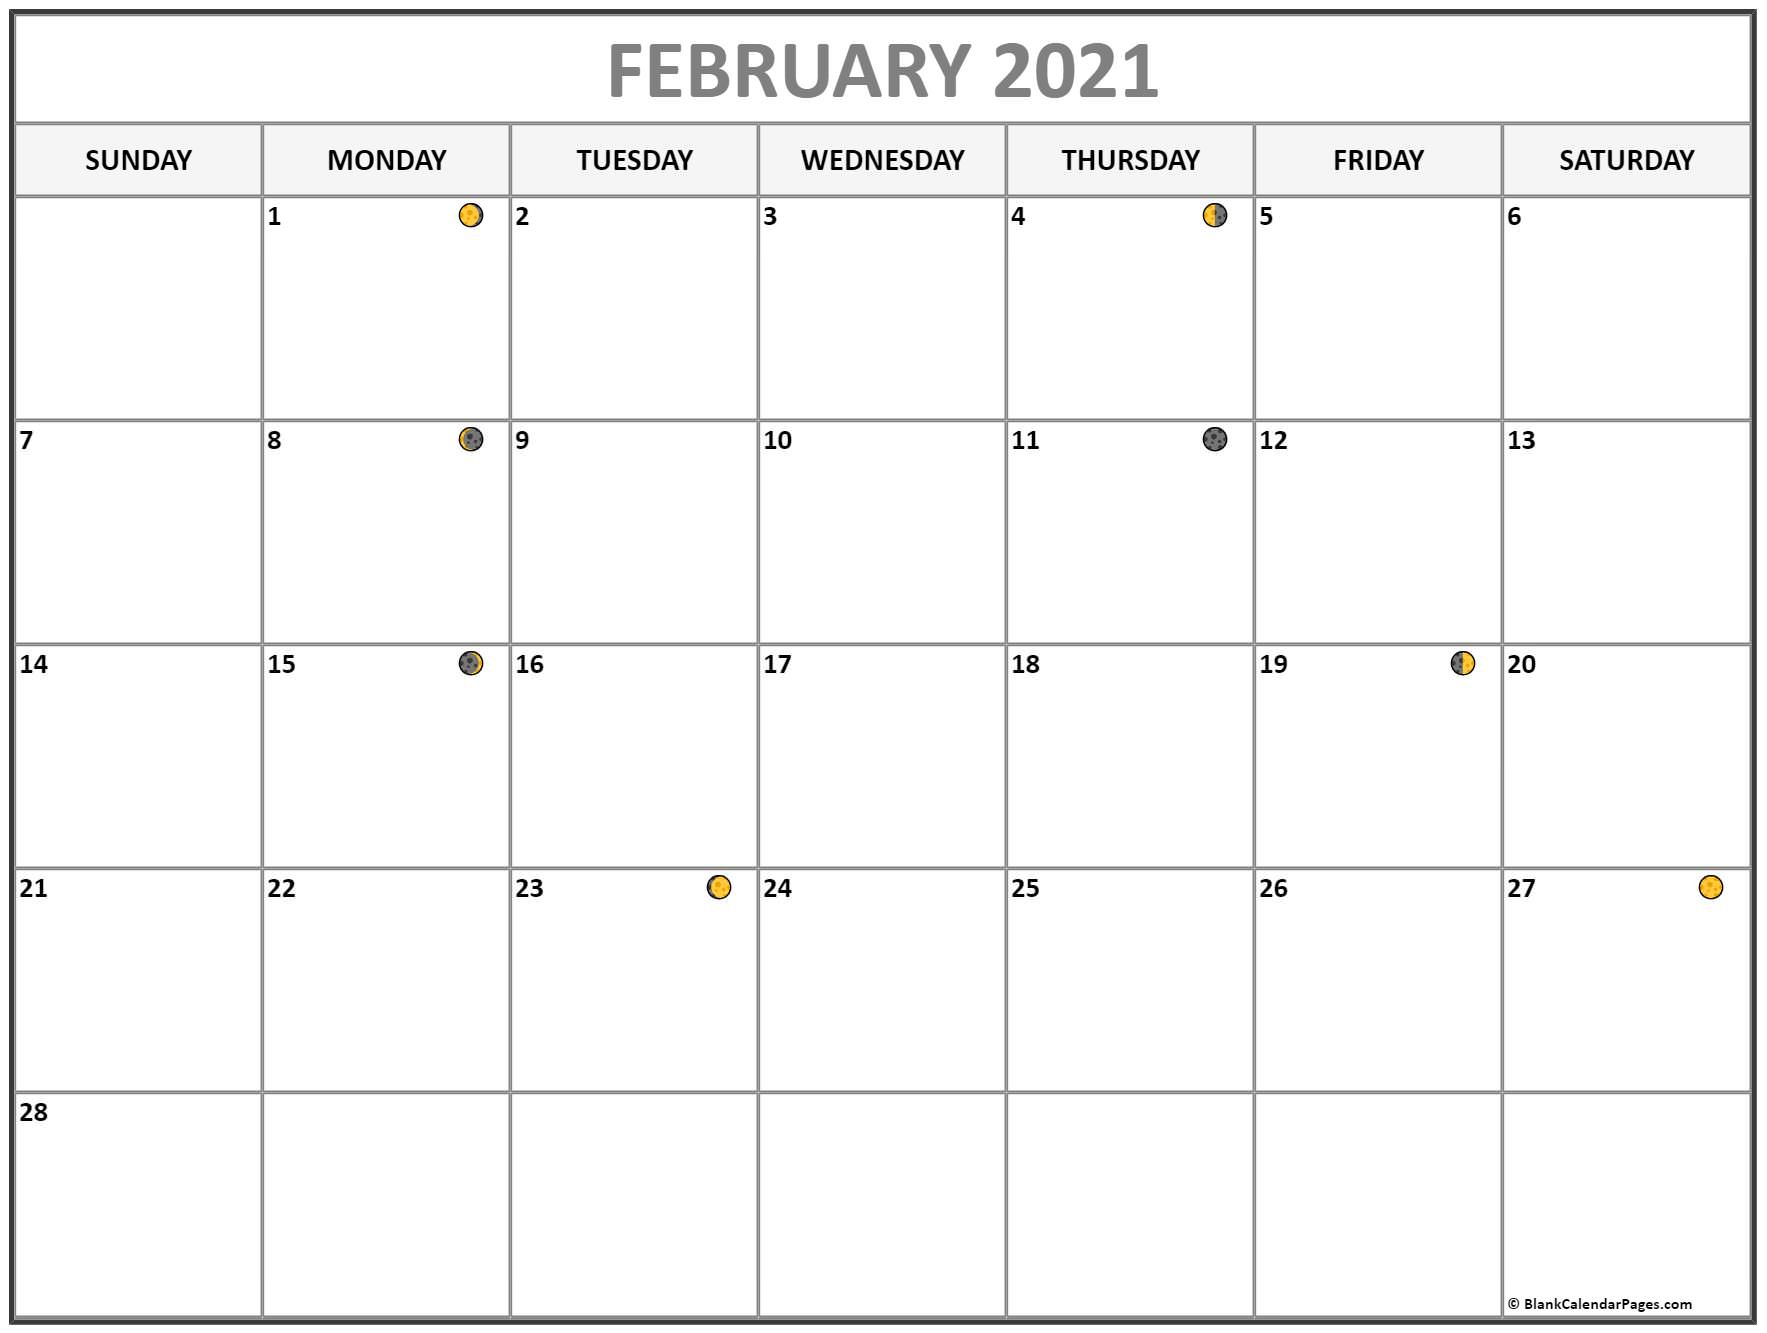 February 2021 Lunar Calendar | Moon Phase Calendar Inside Moon Calendar 2021 Name And Date For Kids